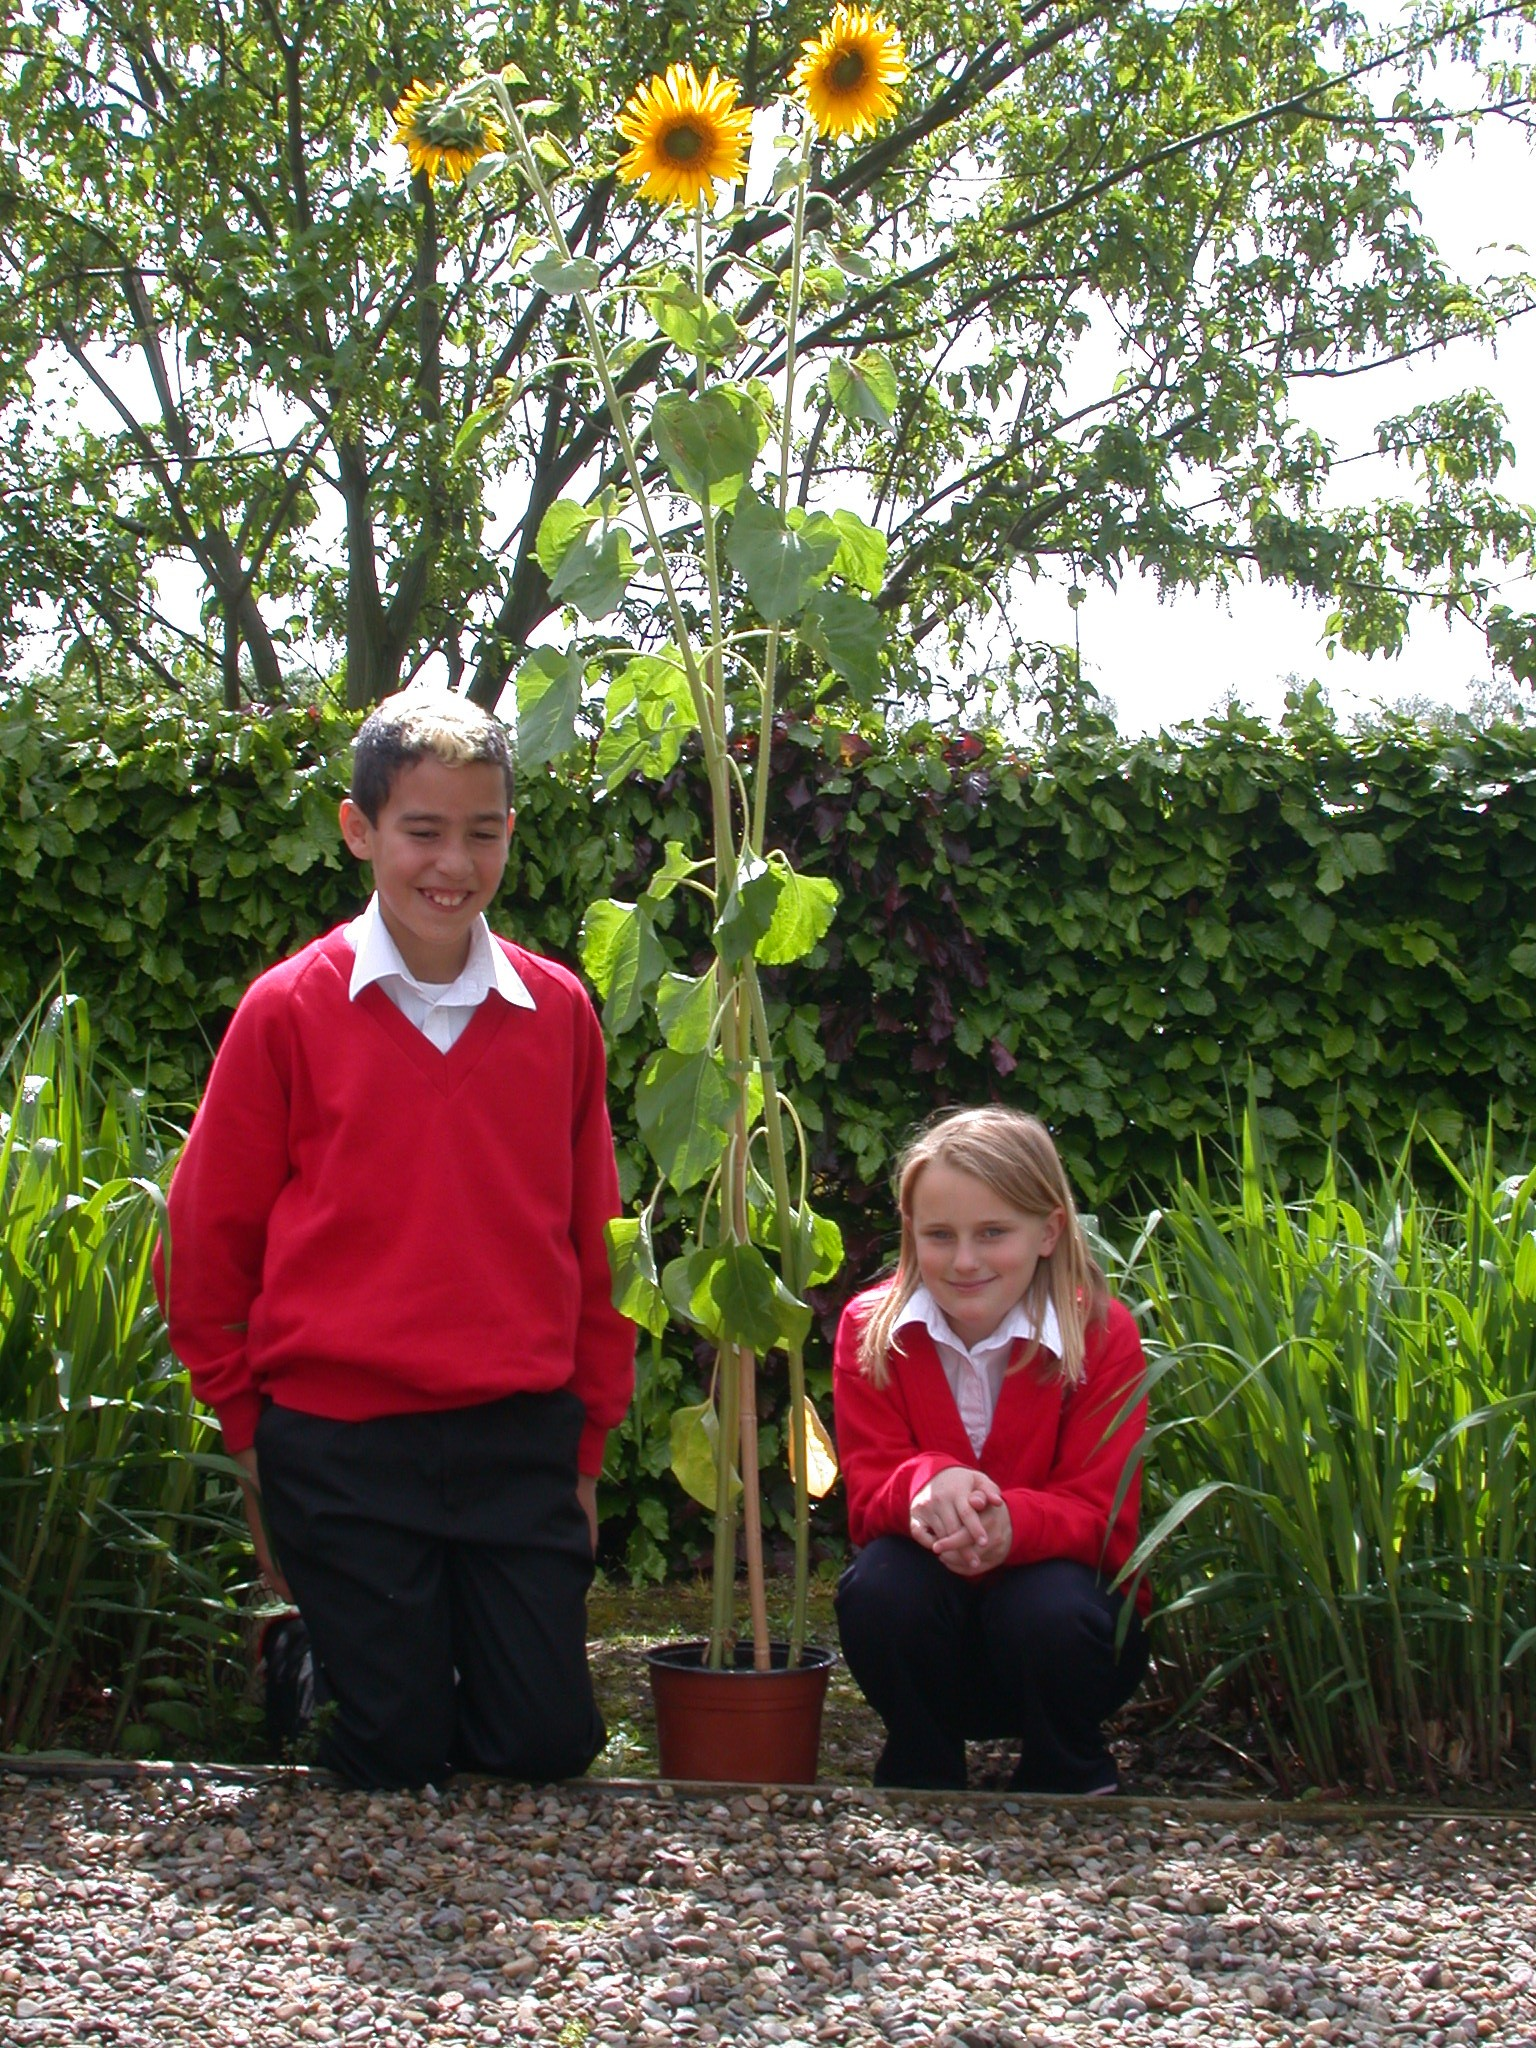 Pictured are James Wild and Elizabeth Cartwright, both 10, from Doxey Primary School.